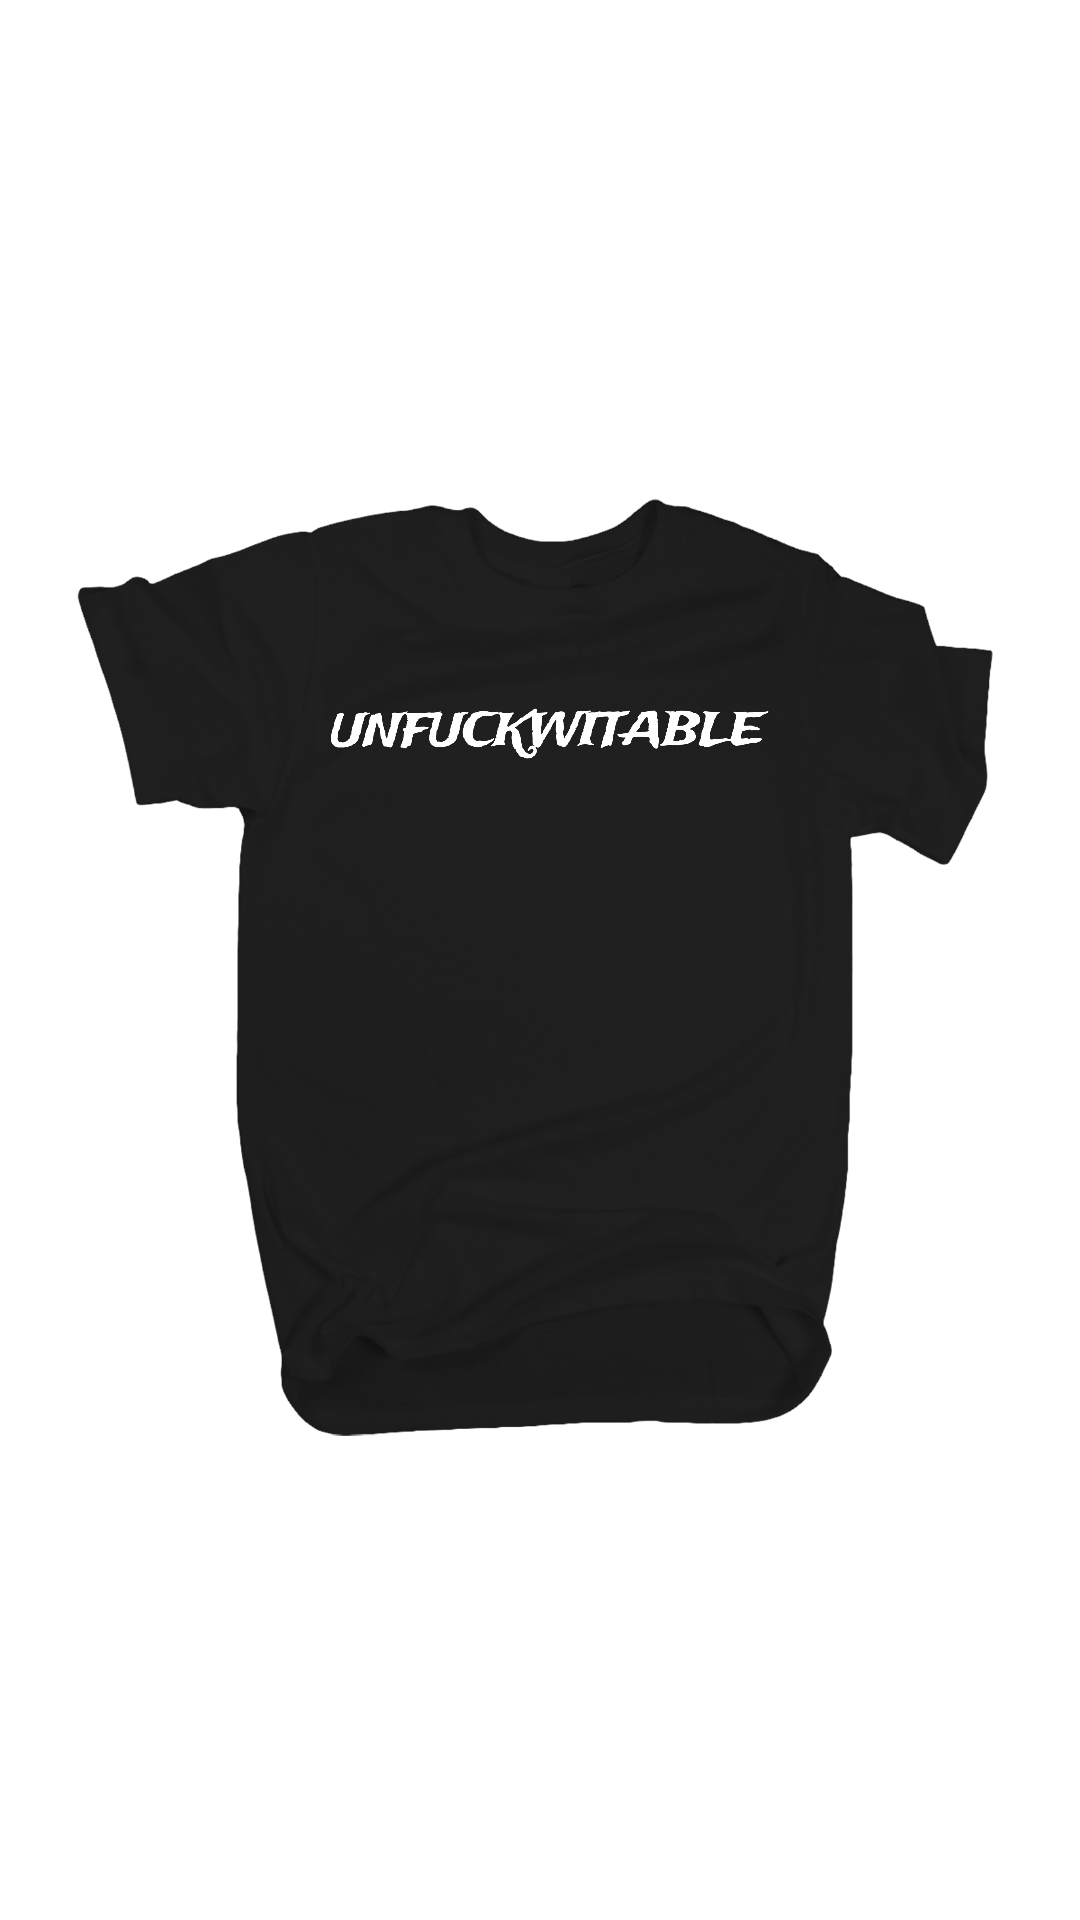 UNFUCKWITABLE Tee